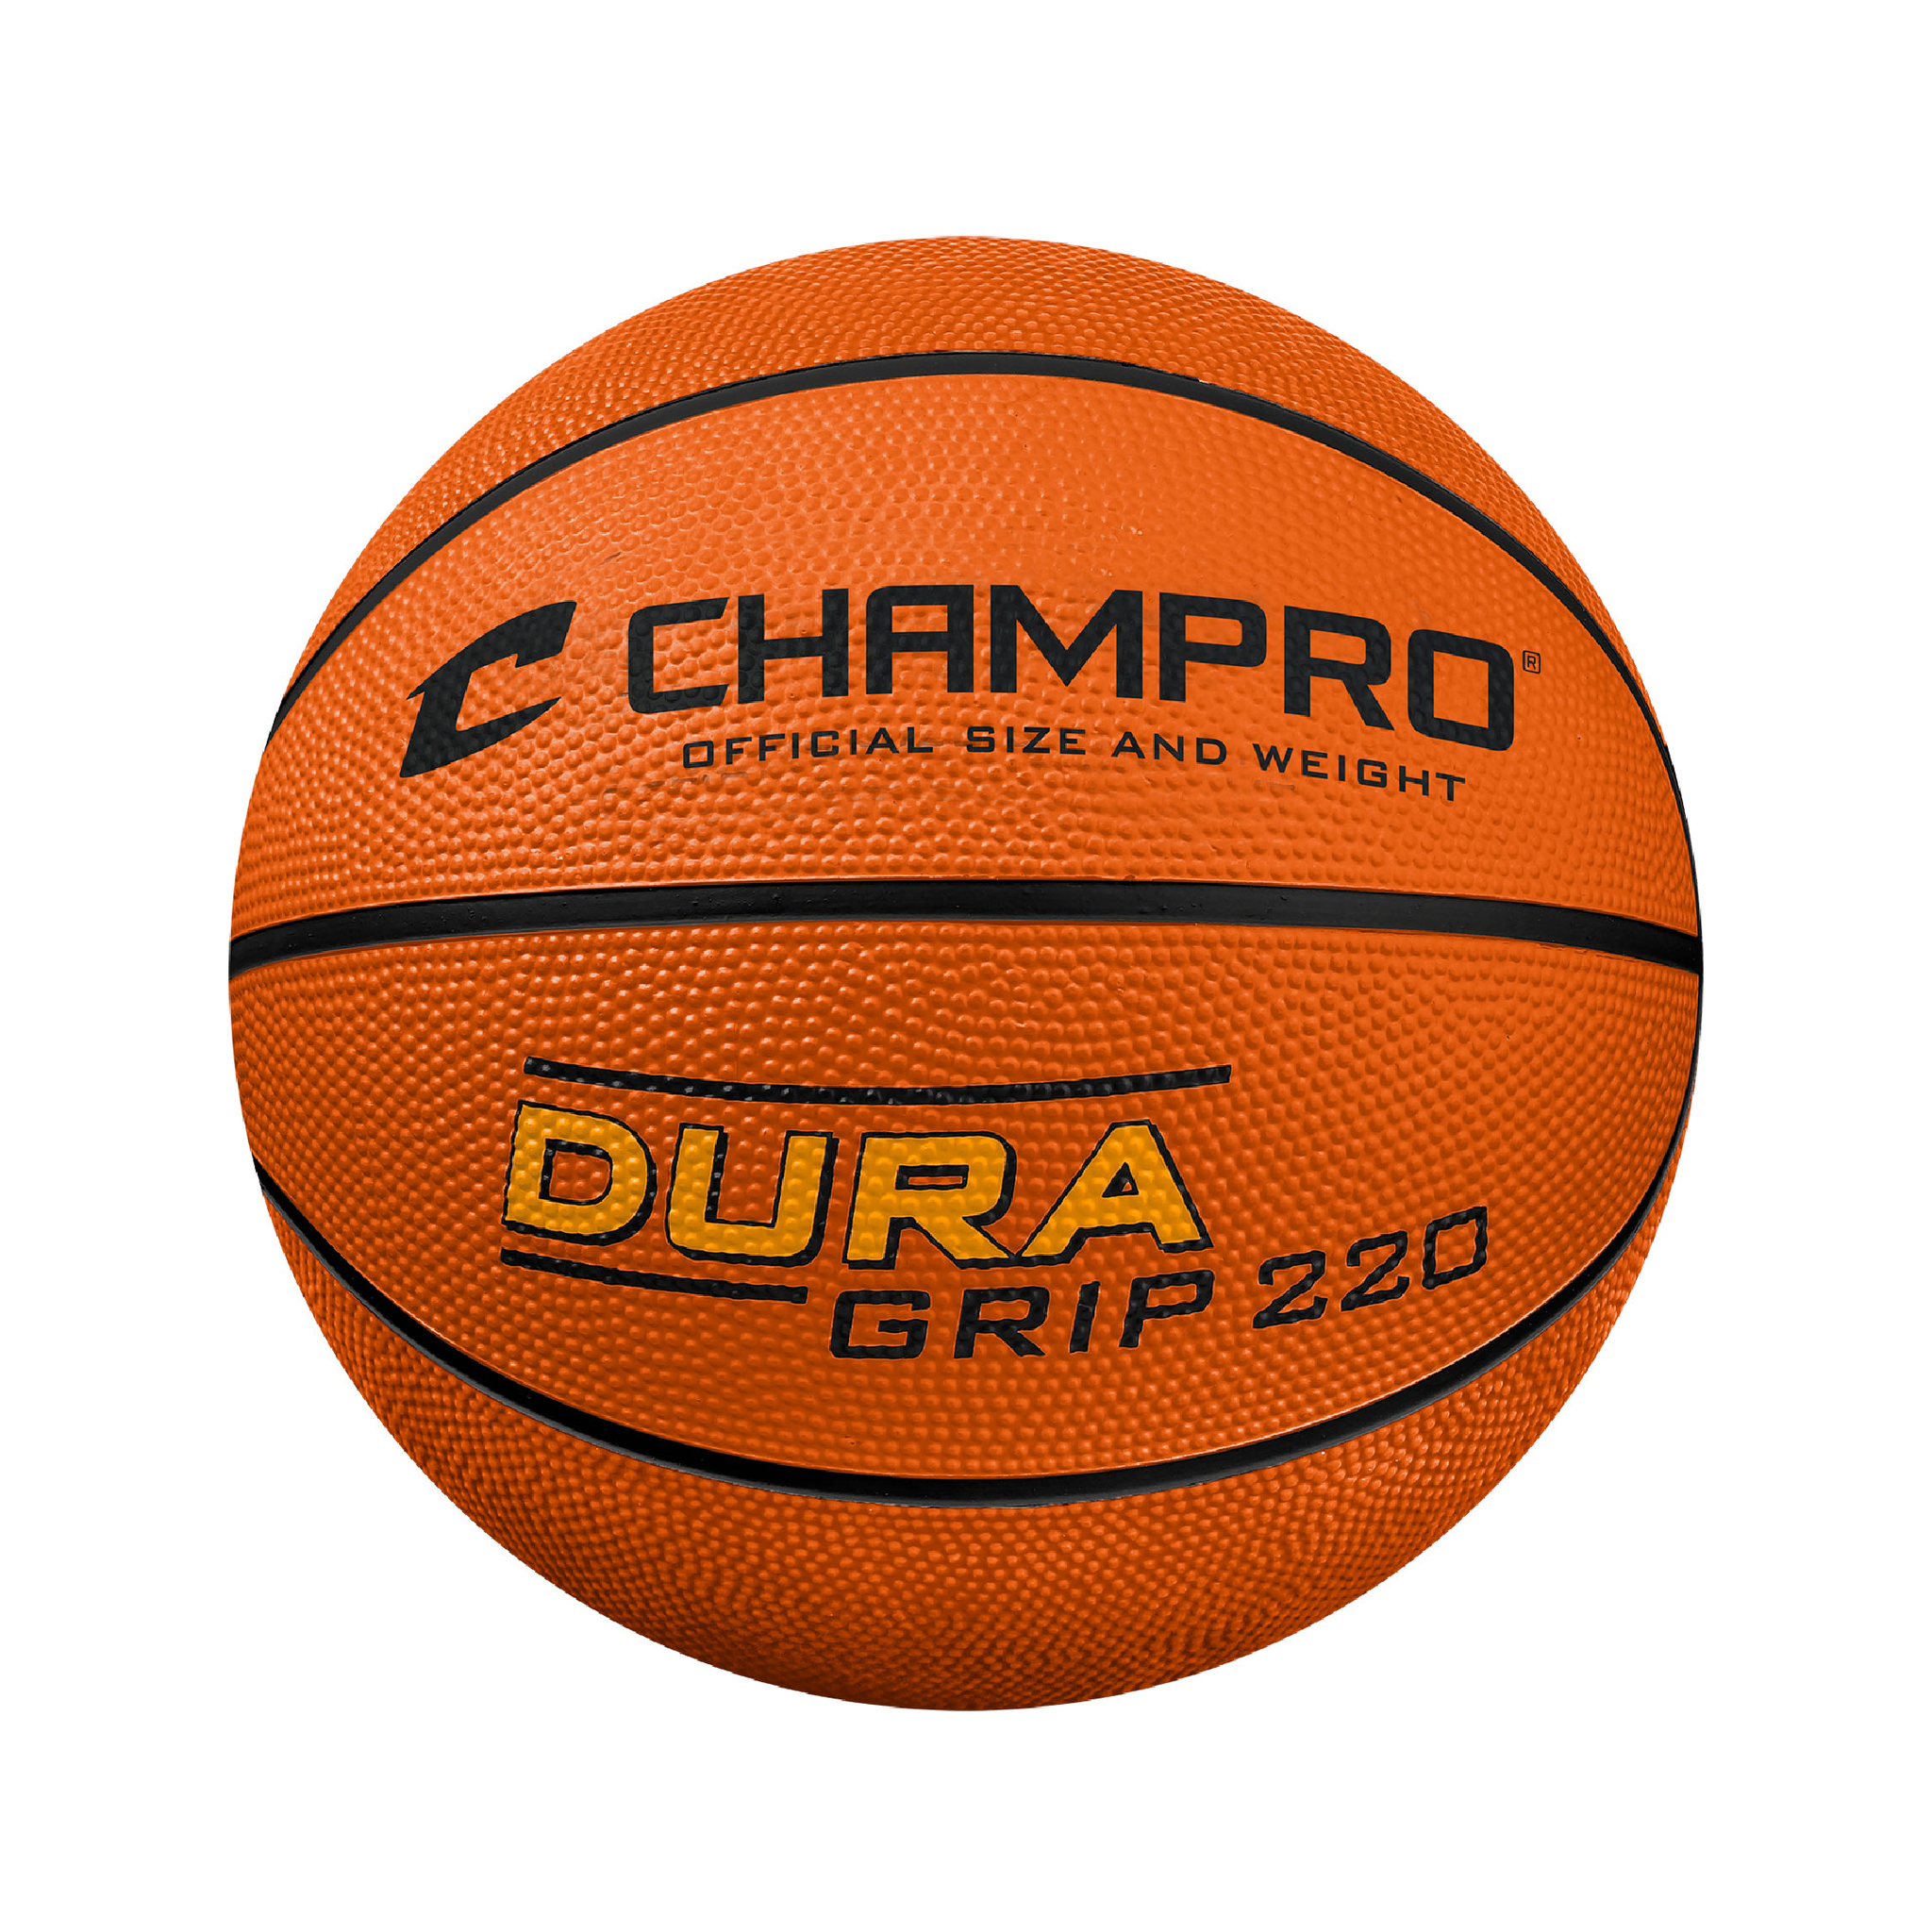 Champro Dura-Grip 220 Official Size Rubber Basketball